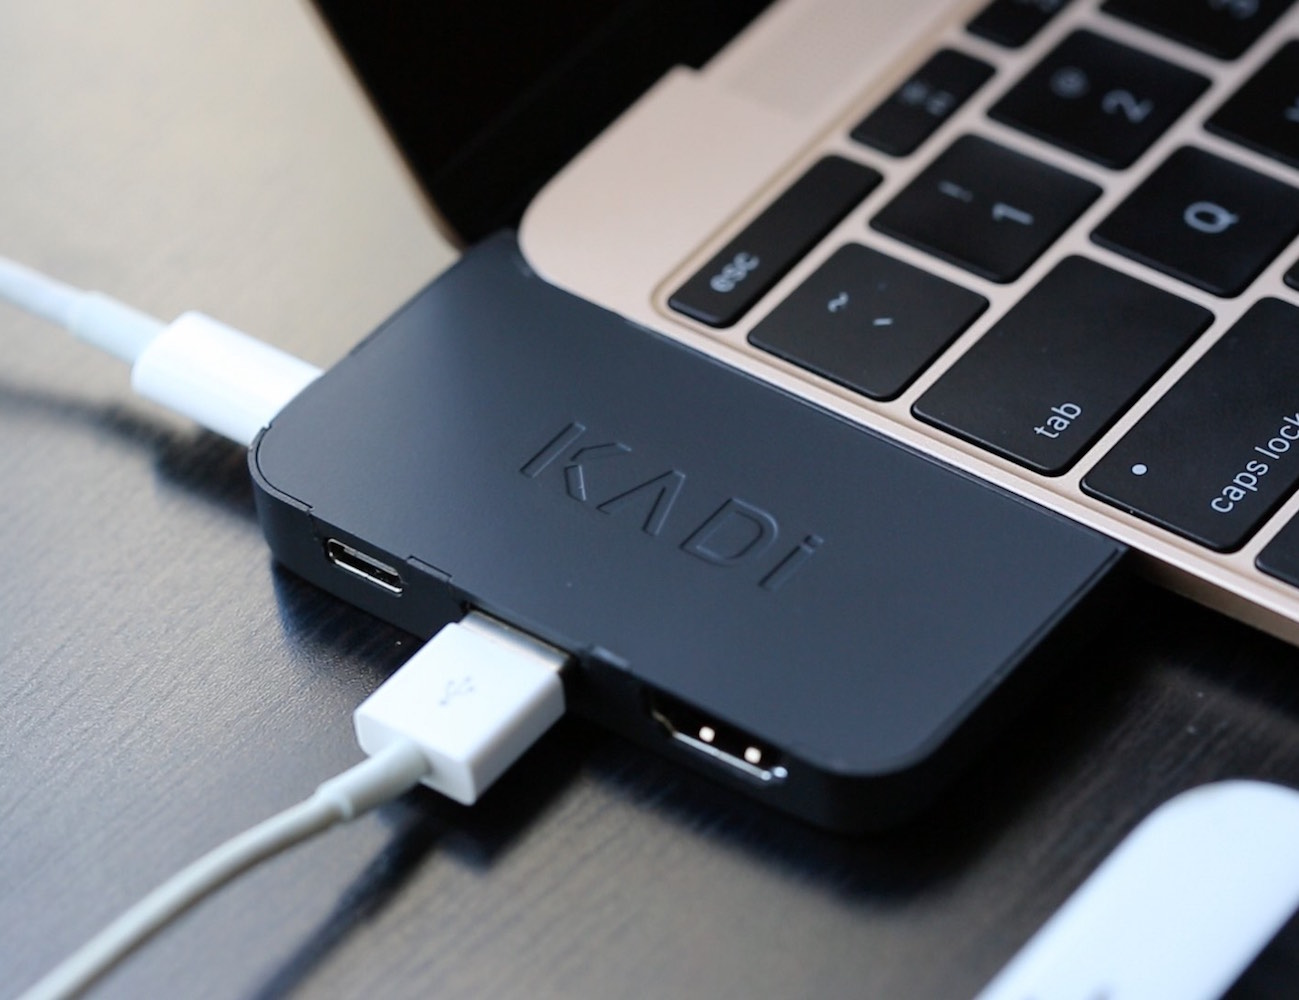 The+KADi+Port+%26%238211%3B+Adapter+For+Macbook+12